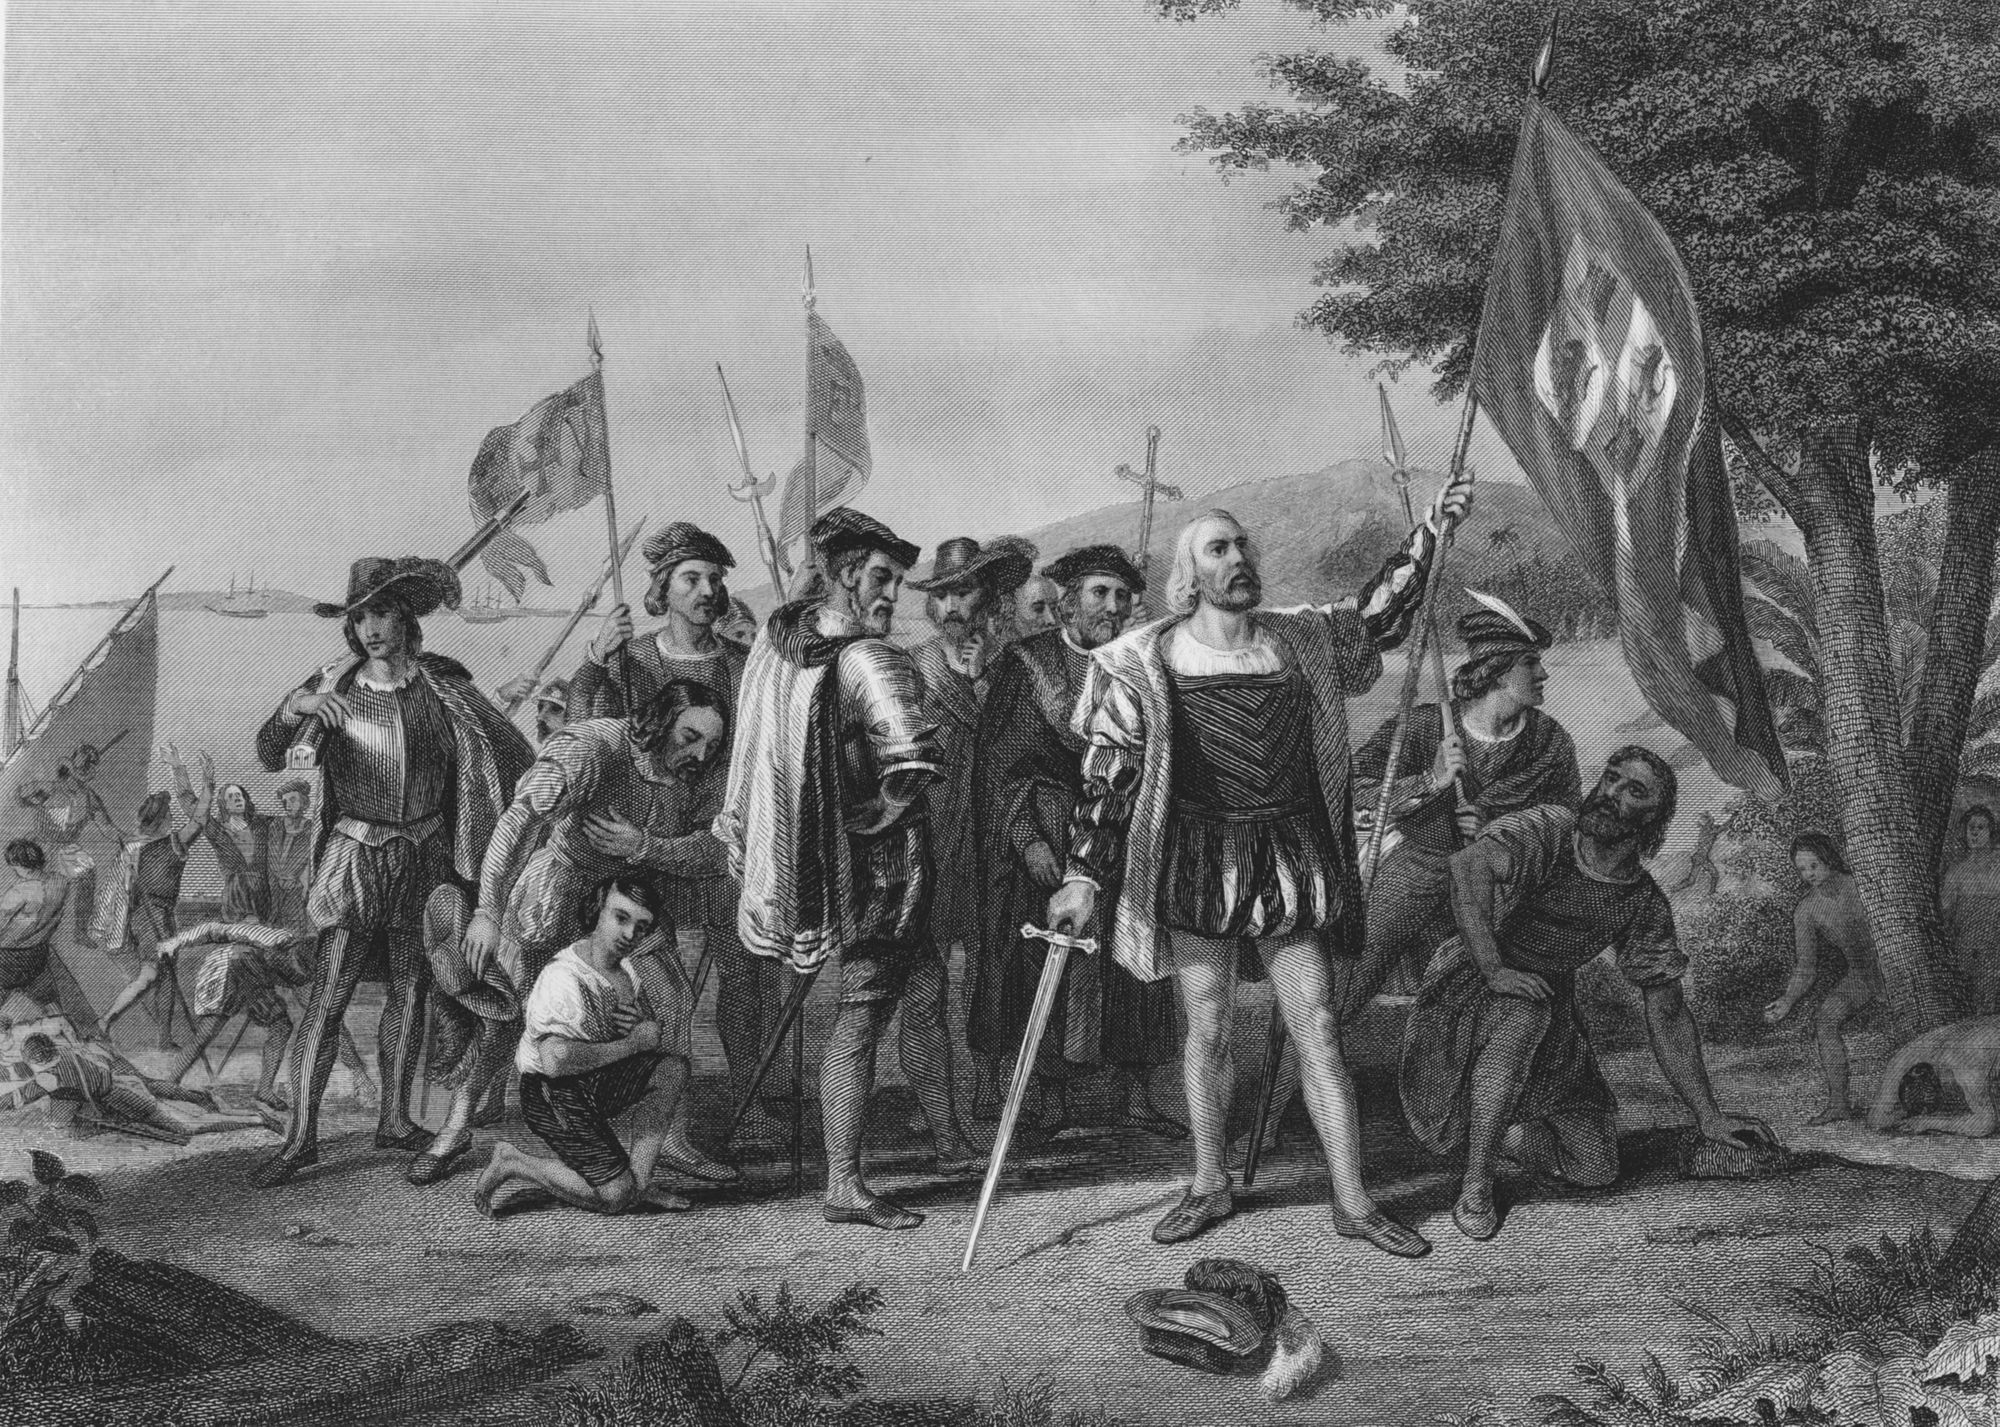 Europeans landing in the americas, The New World at the start of United States history